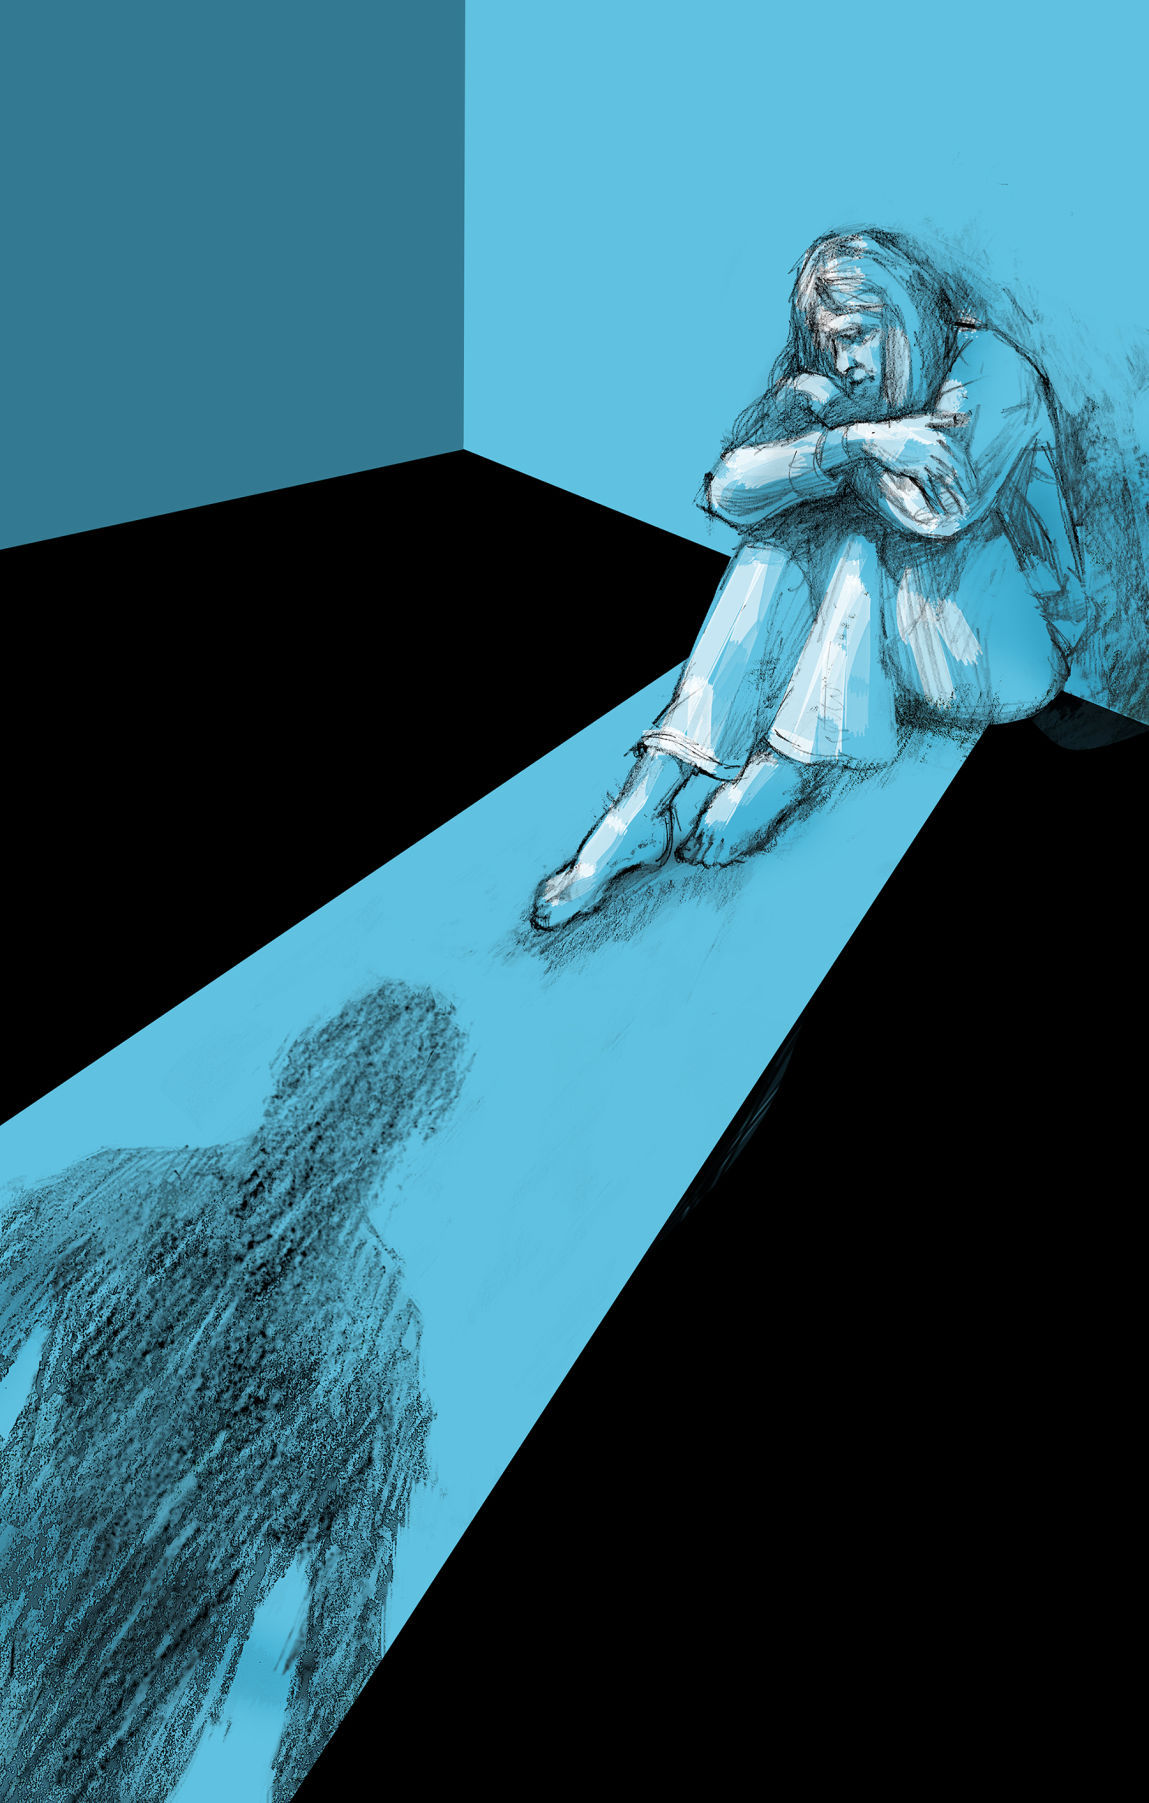 Domestic Violence Response Has Improved But More Work To